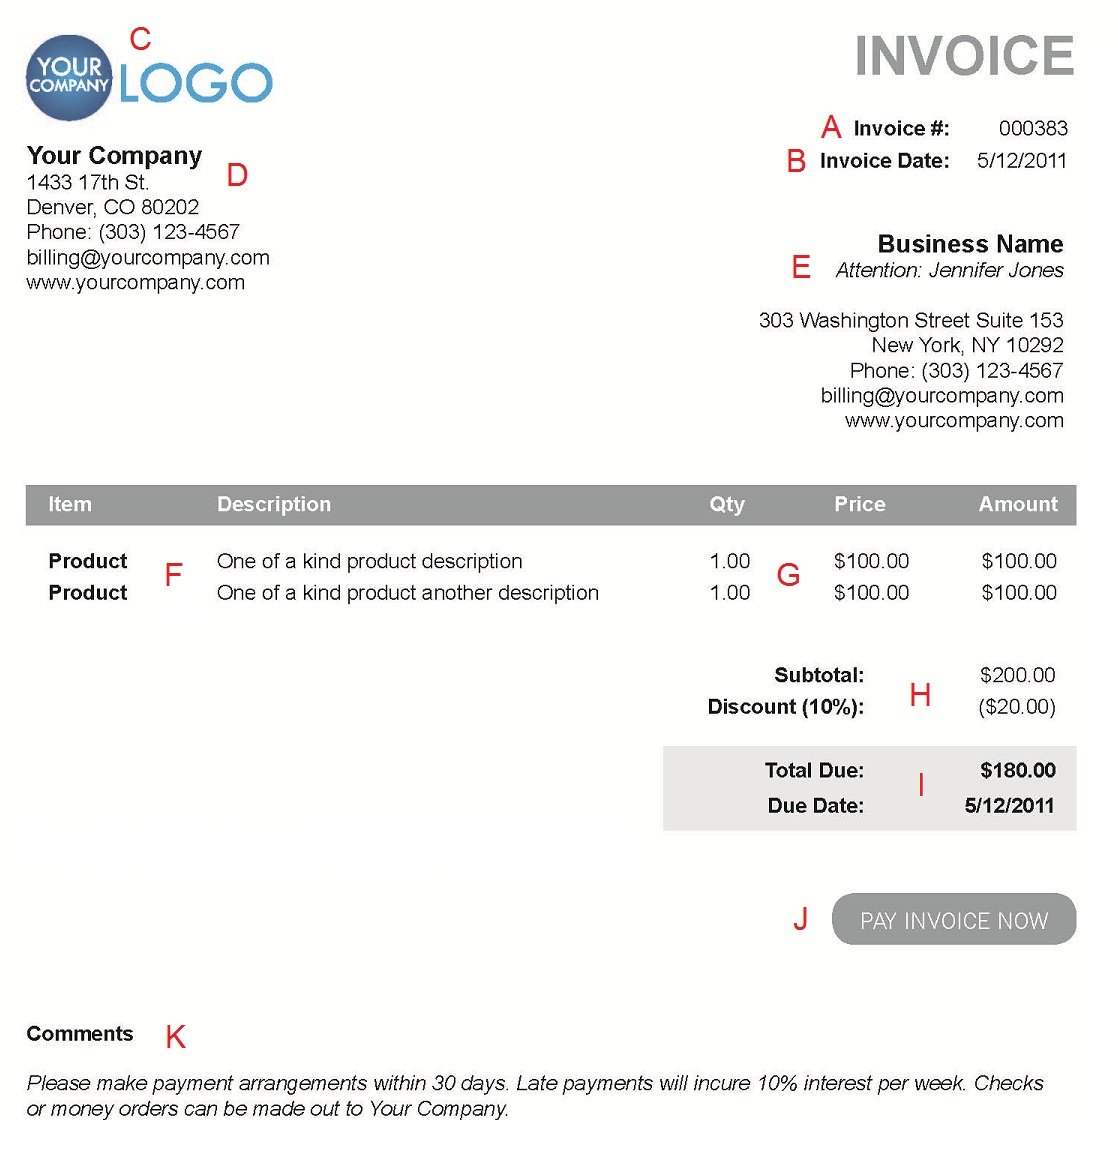 Amatospizzaus  Terrific The  Different Sections Of An Electronic Payment Invoice With Great A  With Captivating Free Uk Invoice Template Word Also Get Invoice In Addition Template Of Invoice For Services And Photography Invoice Template Free As Well As Automatic Invoice Additionally Nab Invoice Finance From Paysimplecom With Amatospizzaus  Great The  Different Sections Of An Electronic Payment Invoice With Captivating A  And Terrific Free Uk Invoice Template Word Also Get Invoice In Addition Template Of Invoice For Services From Paysimplecom